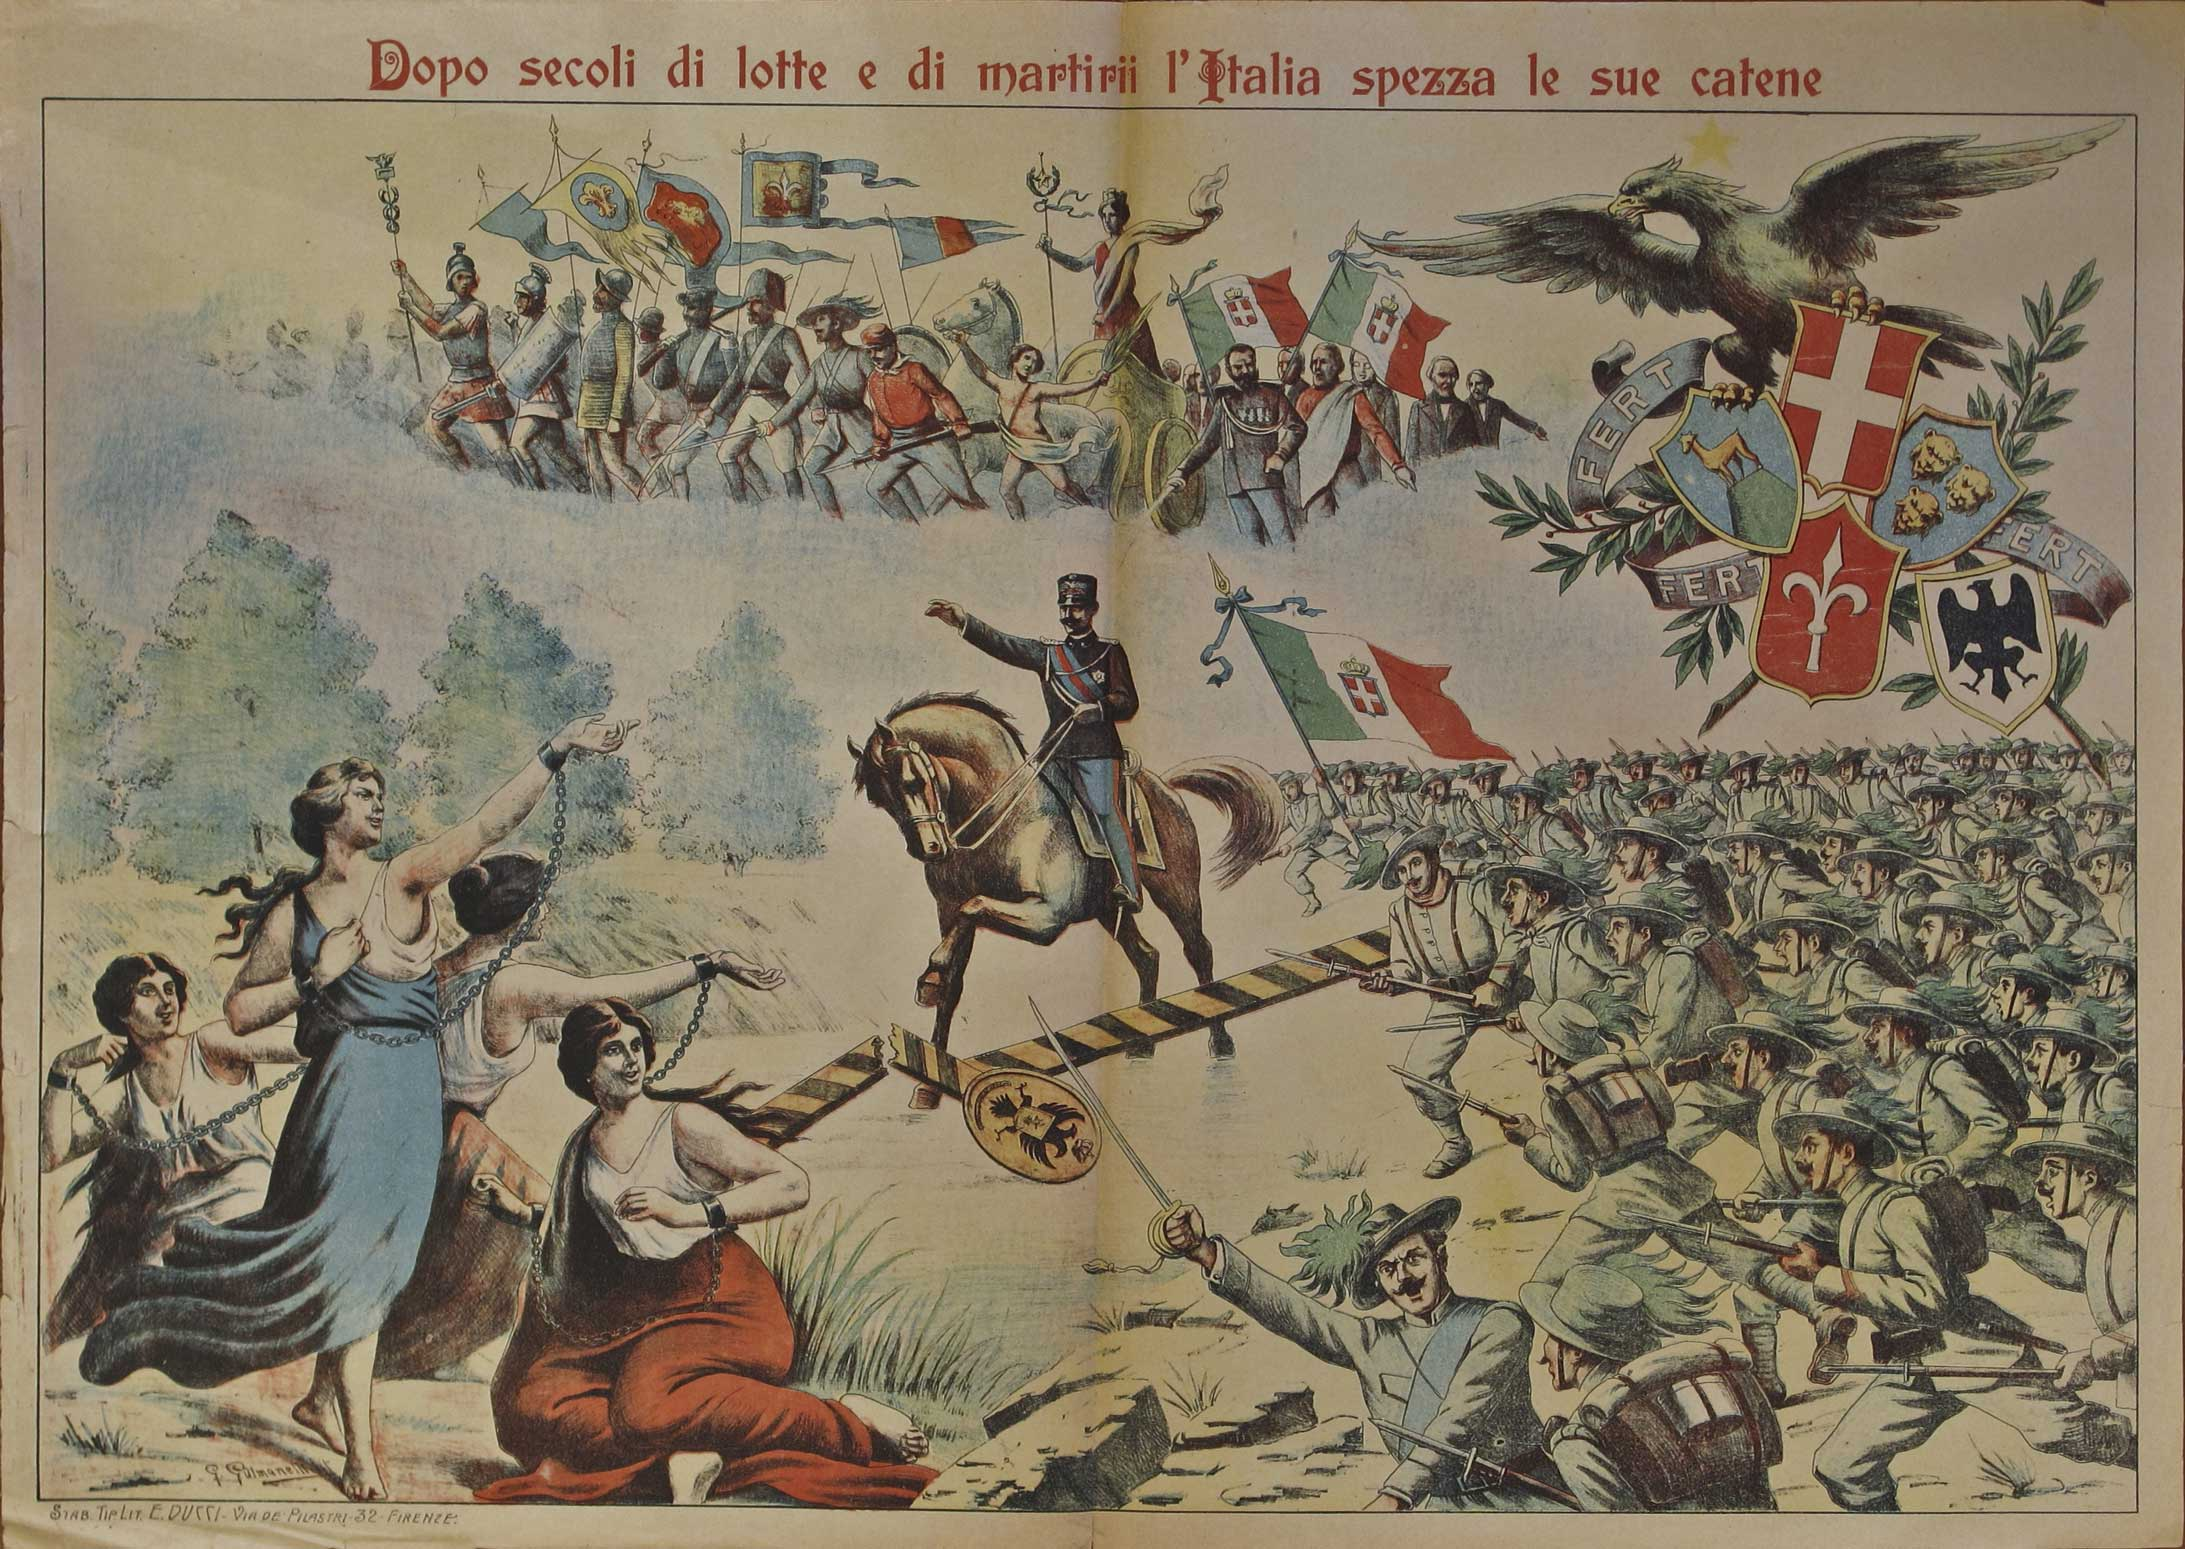 Print showing Vittorio Emanuele III on a horse encouraging his marksmen to assault and cross the Austrian border to free women in chains: an allegory of the unredeemed territories.